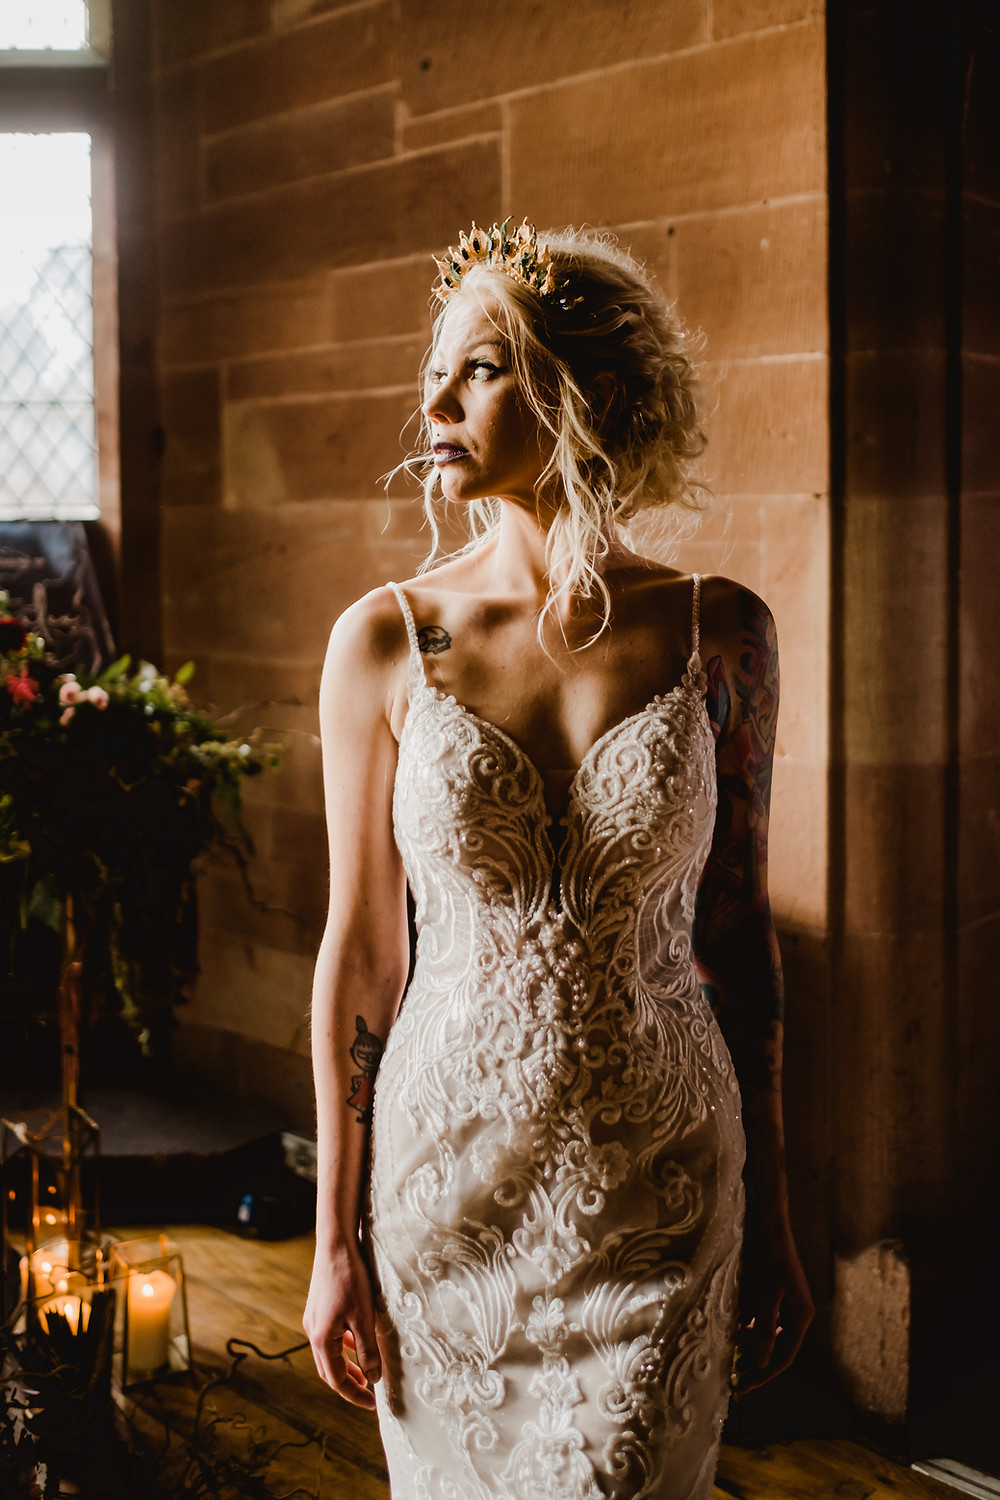 Essence of Australia lace wedding dress from Cheadle Bride, Cheshire. Castle wedding. Cheshire wedding accessories. Gold wedding crown. Statement headpiece from Glorious by Heidi